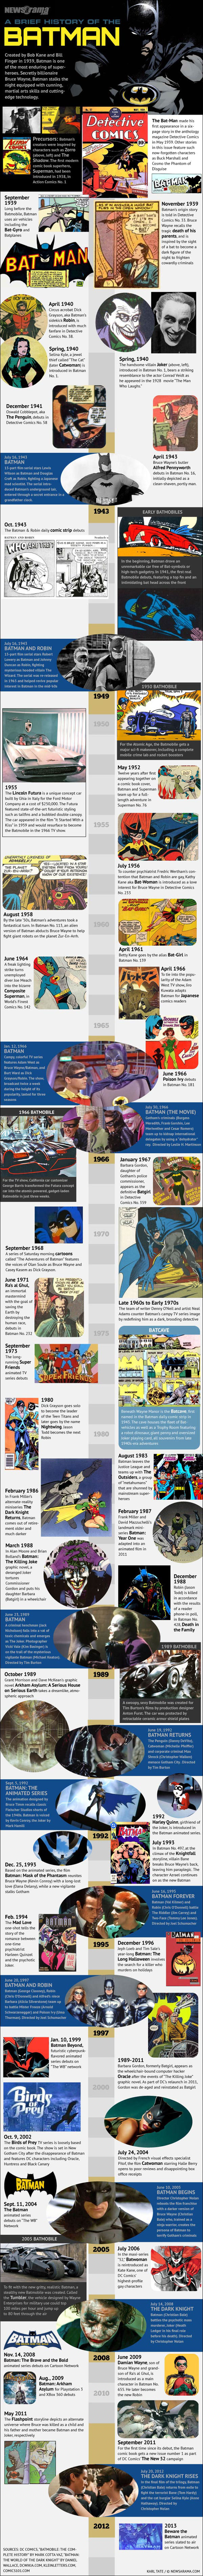 Brief-History-Of-Batman-infographic